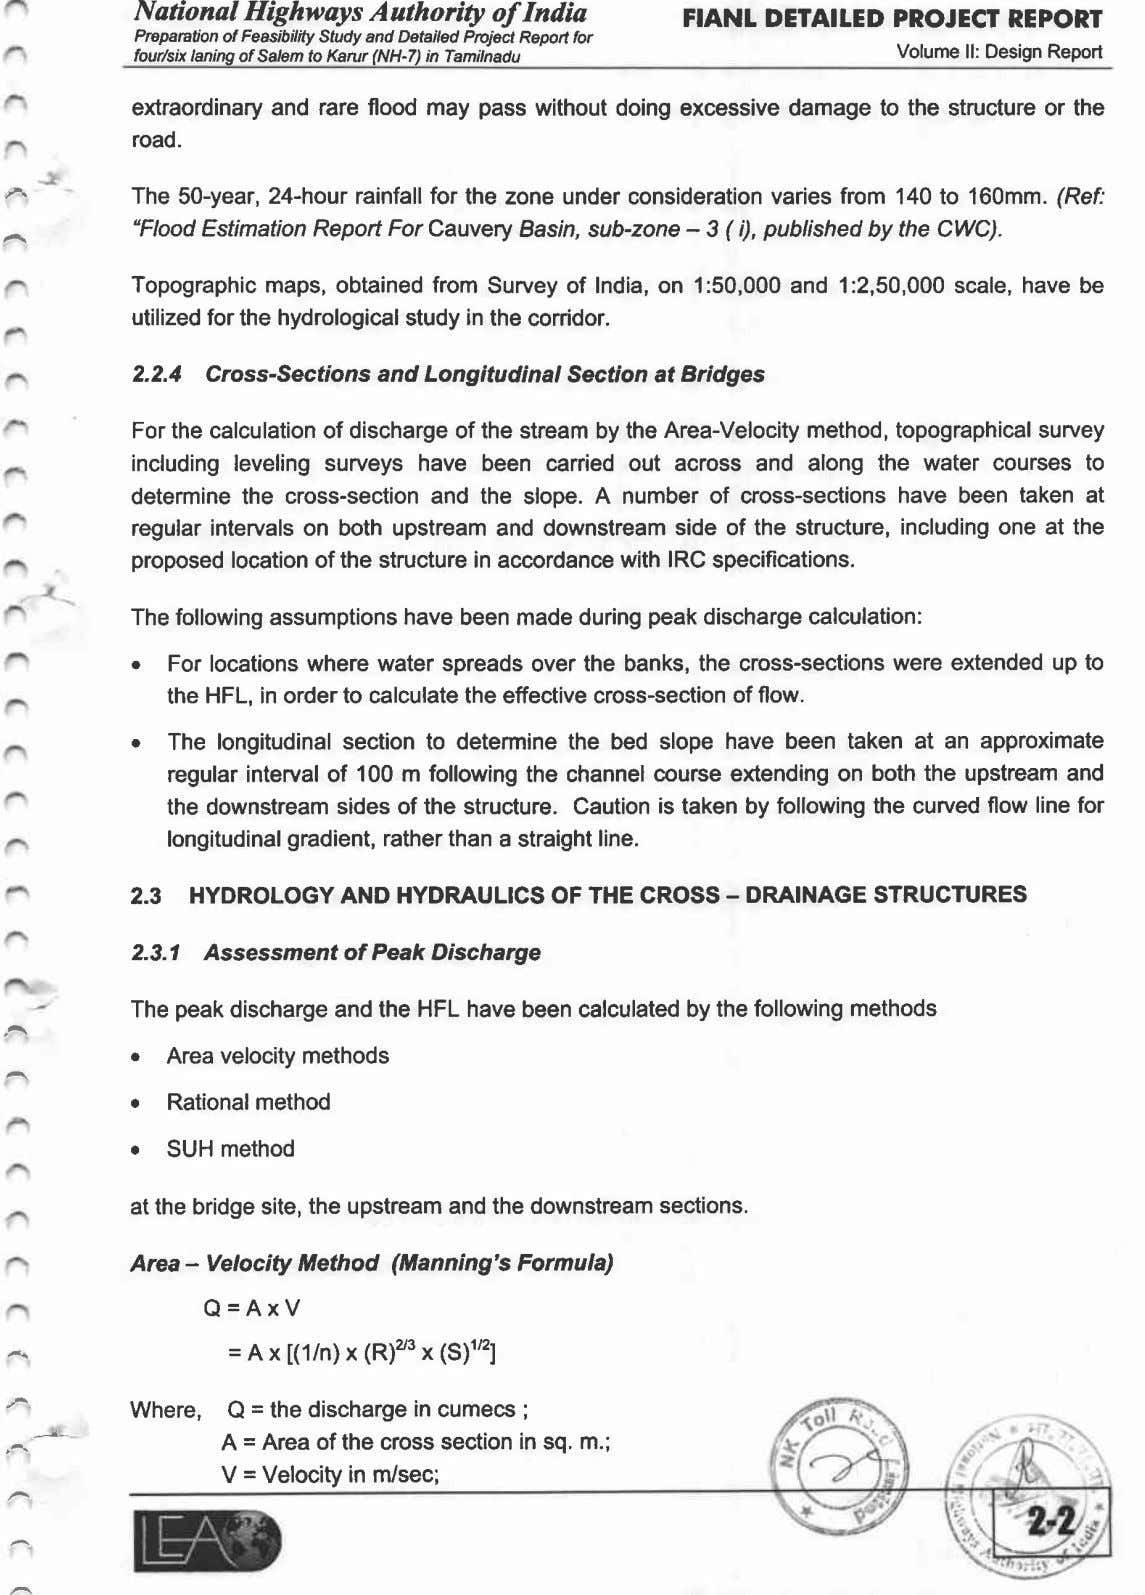 National Highways Authority of India FlANL DETAILED PROJECT REPORT Preparation of Feasibilrty Study and Detailed